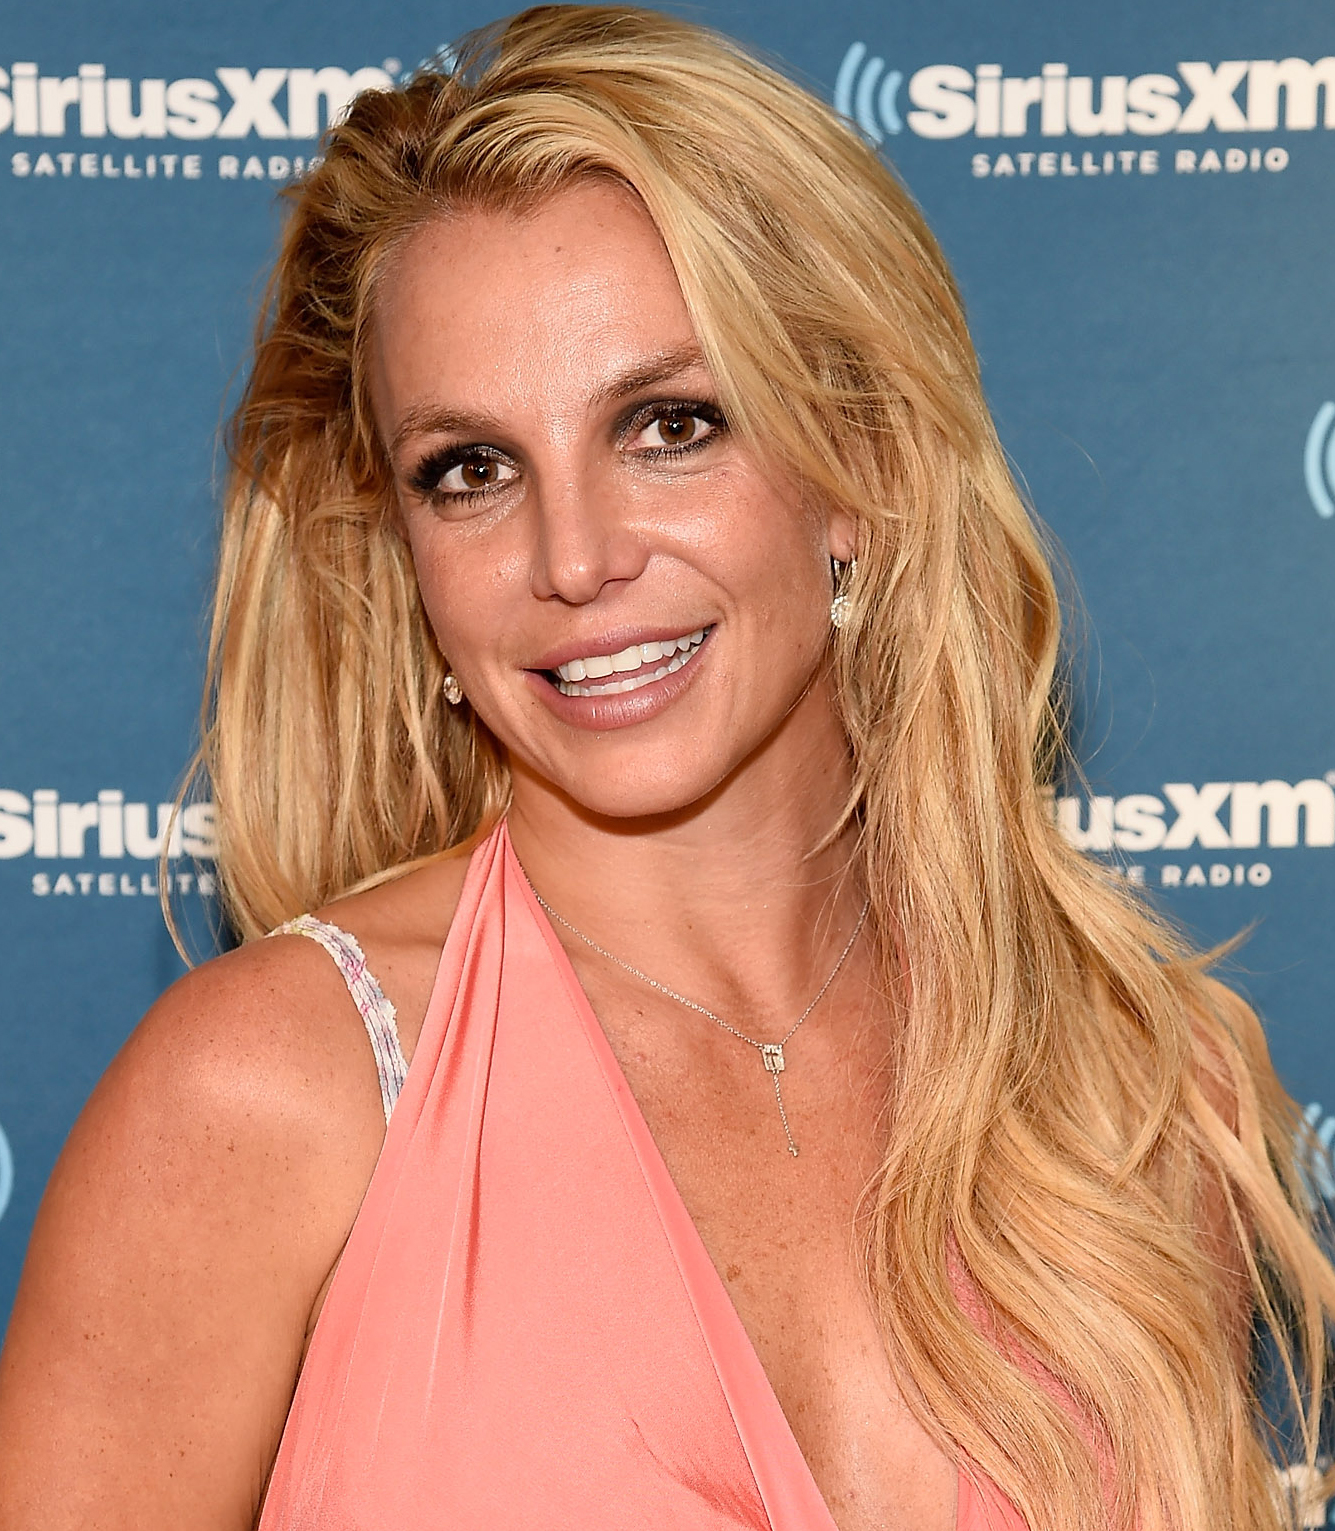 Celebrities Who Look Way Older: Britney Spears, Adele, and ...